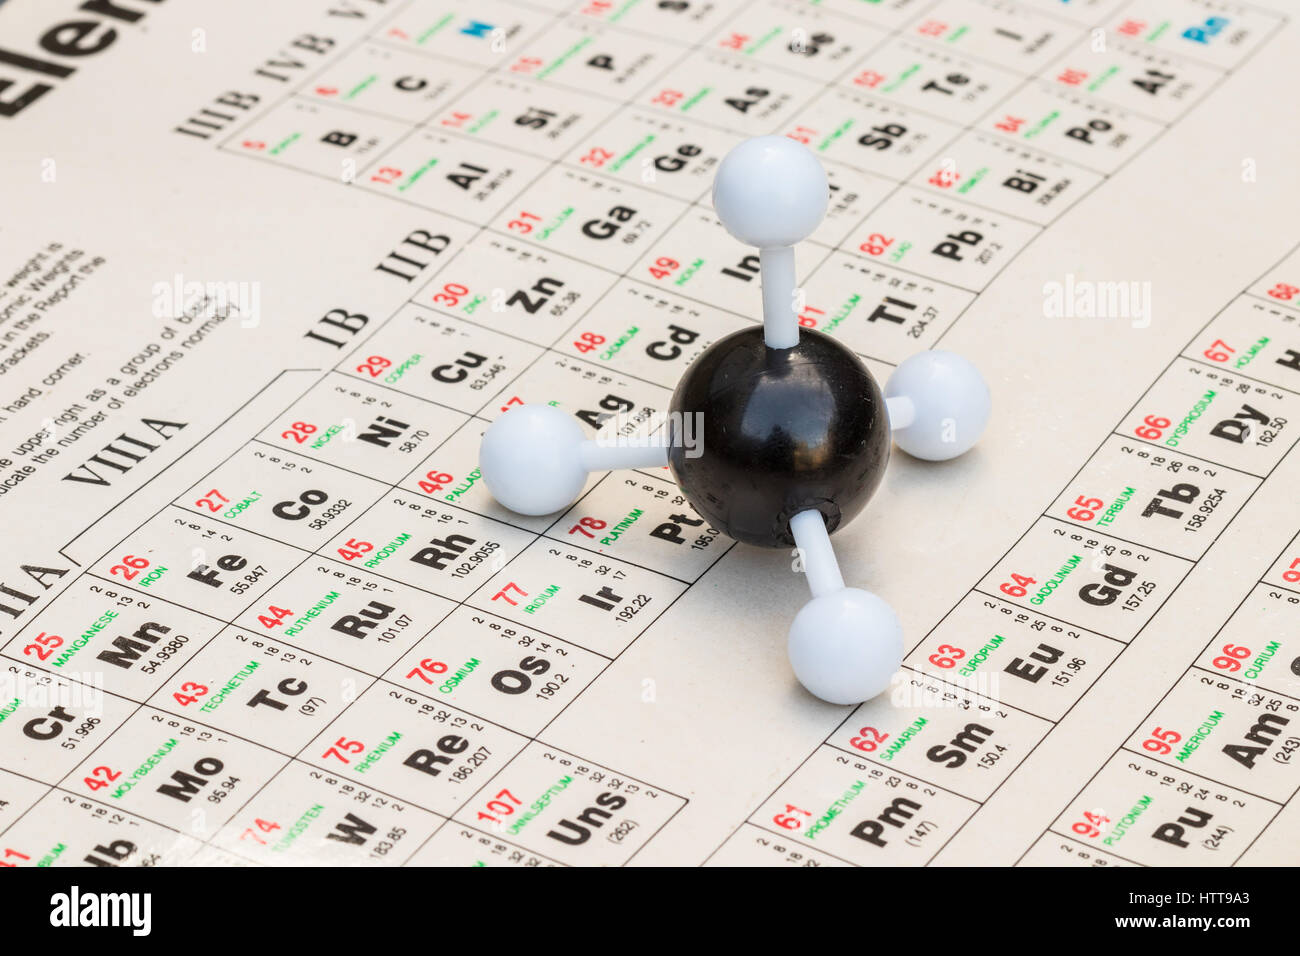 Ball And Stick Model Of Methane (CH4) With The Periodic Table Of Elements  On The Background.